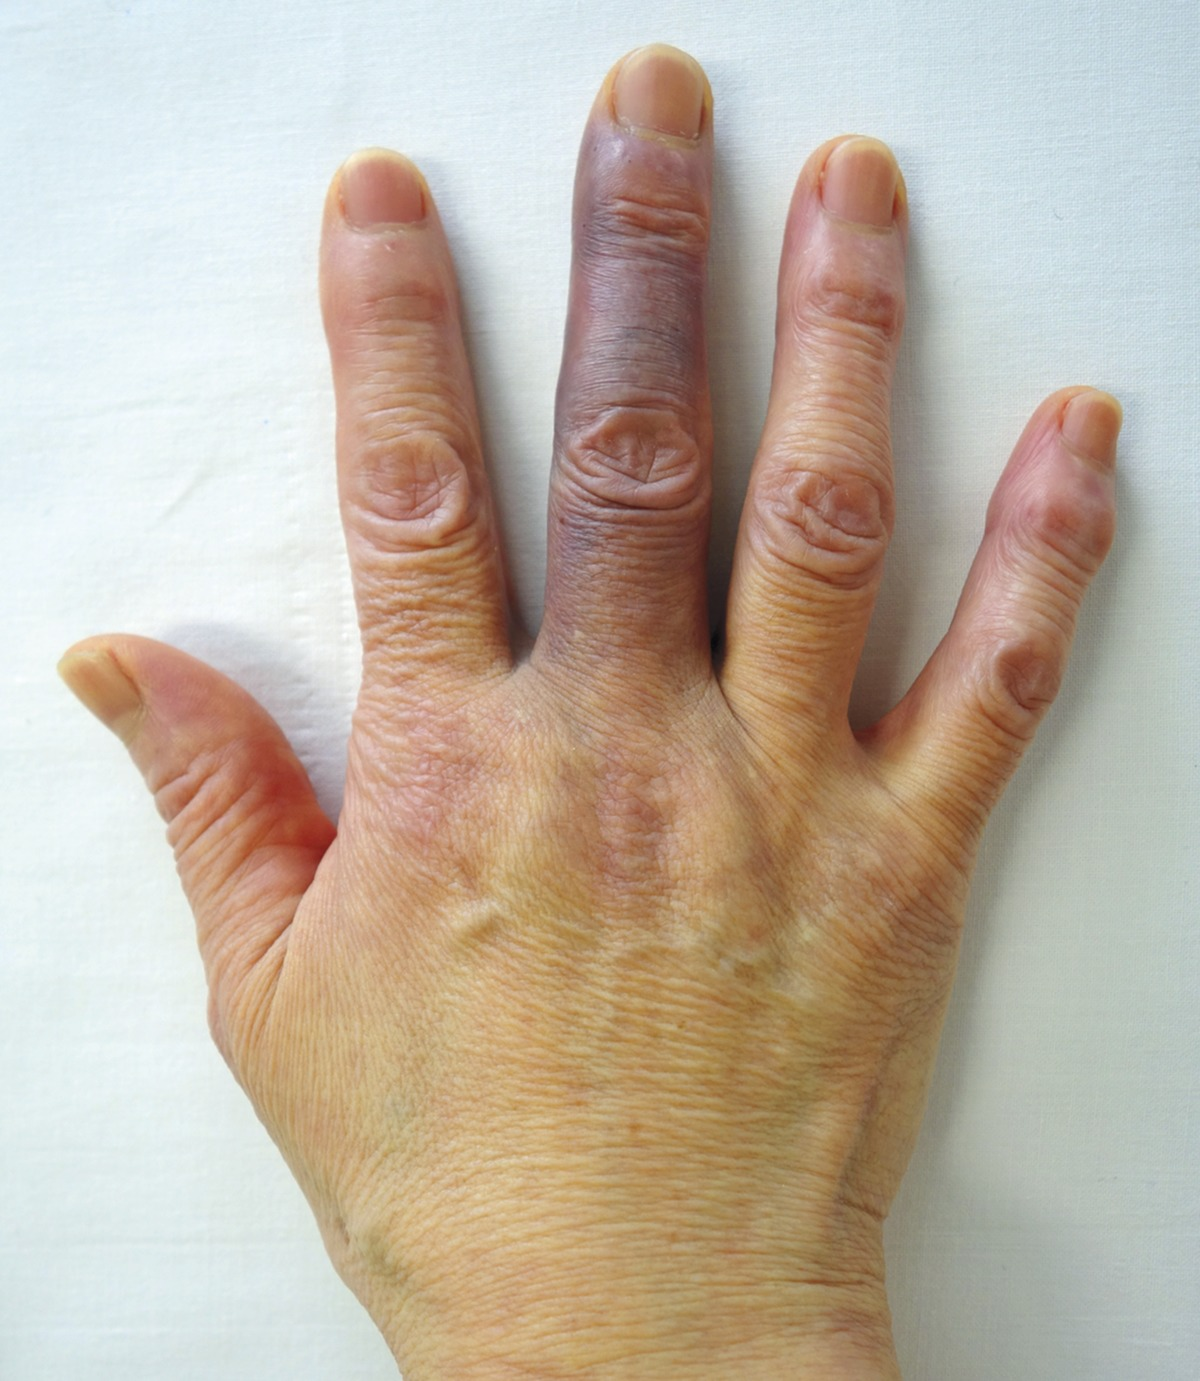 What Causes a Finger Infection